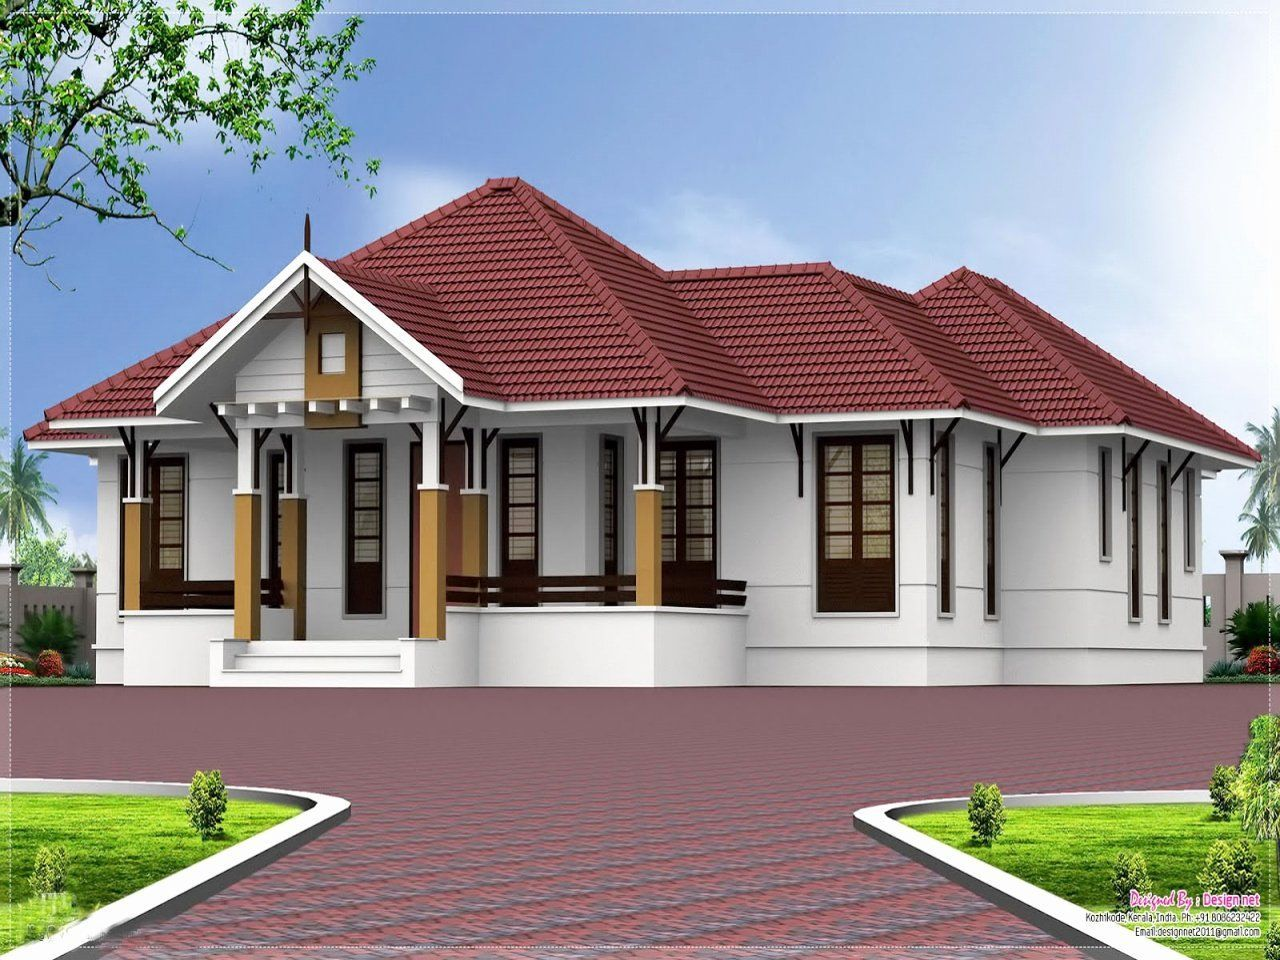 4 Level House Plans Elegant 4 Bedroom House Plans Open Floor Plan 4 Bedroom Open In 2020 Kerala House Design Bungalow House Design Single Floor House Design